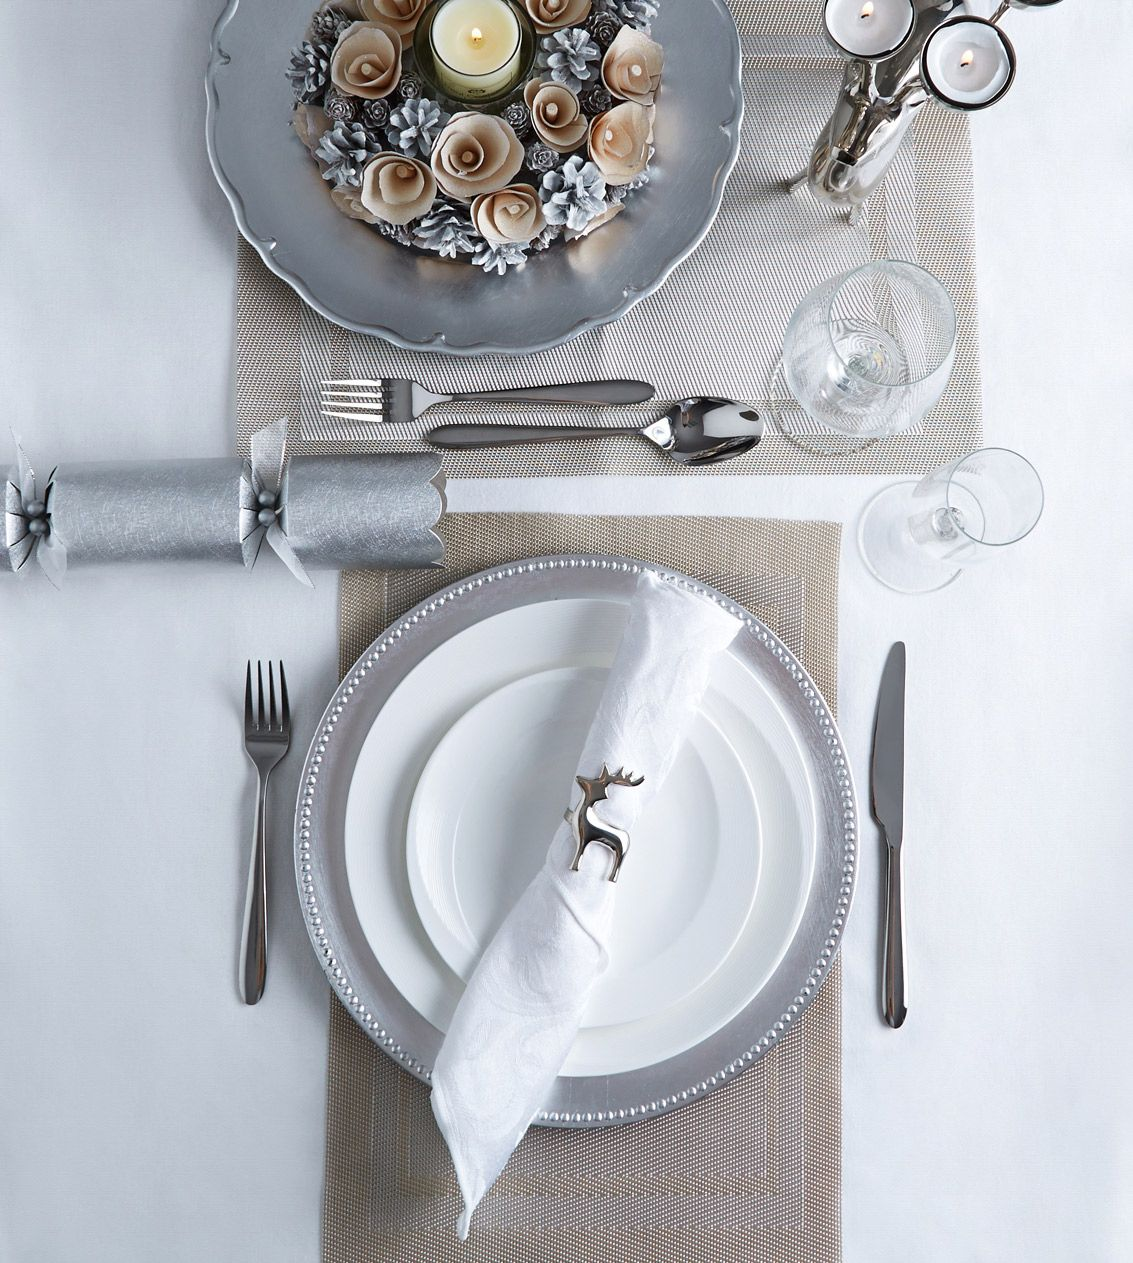 Dunnes Store Christmas Decorations: Classic Paul Costelloe Living Table Set In Wintry Grey And